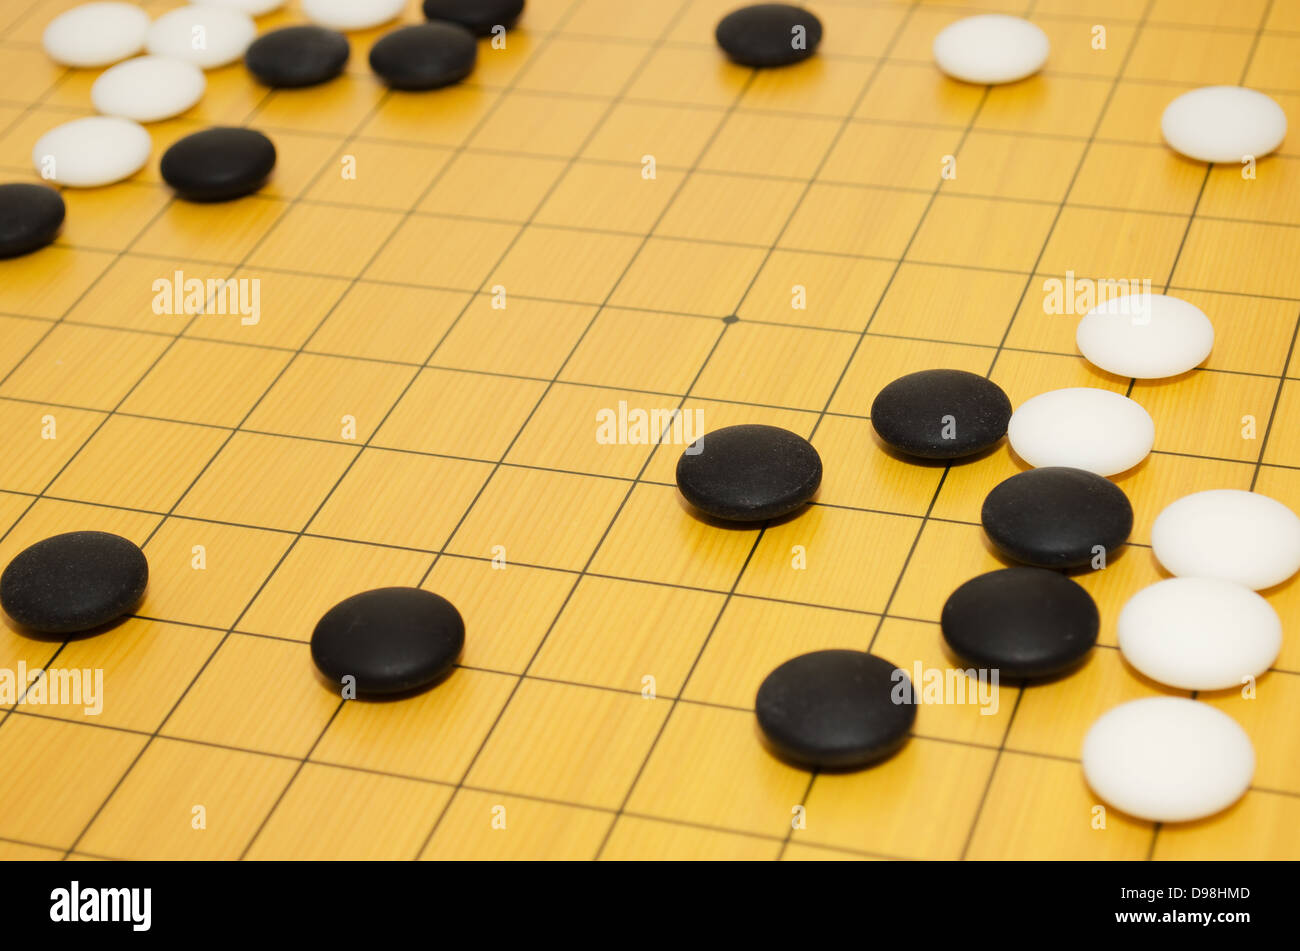 A scene from a game of go. Selective focus. - Stock Image